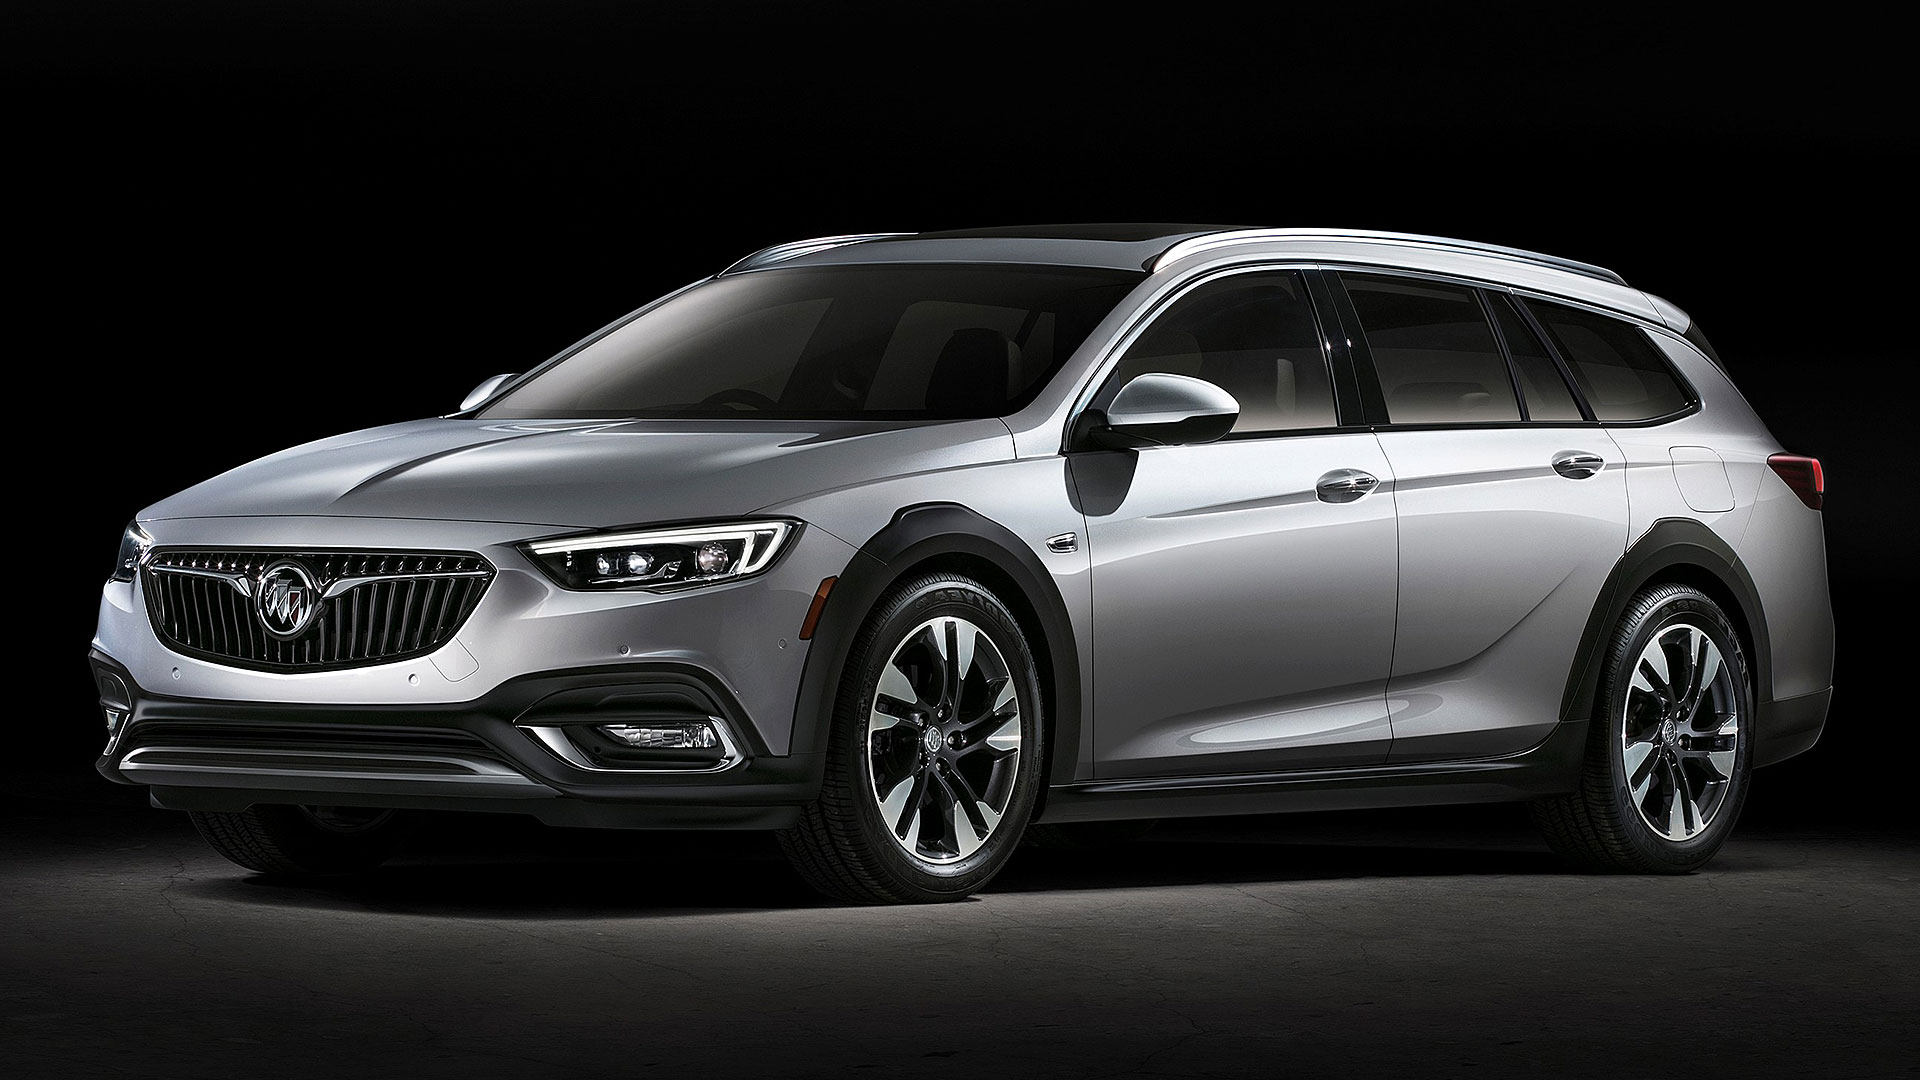 2019 Buick Regal 4-door wagon